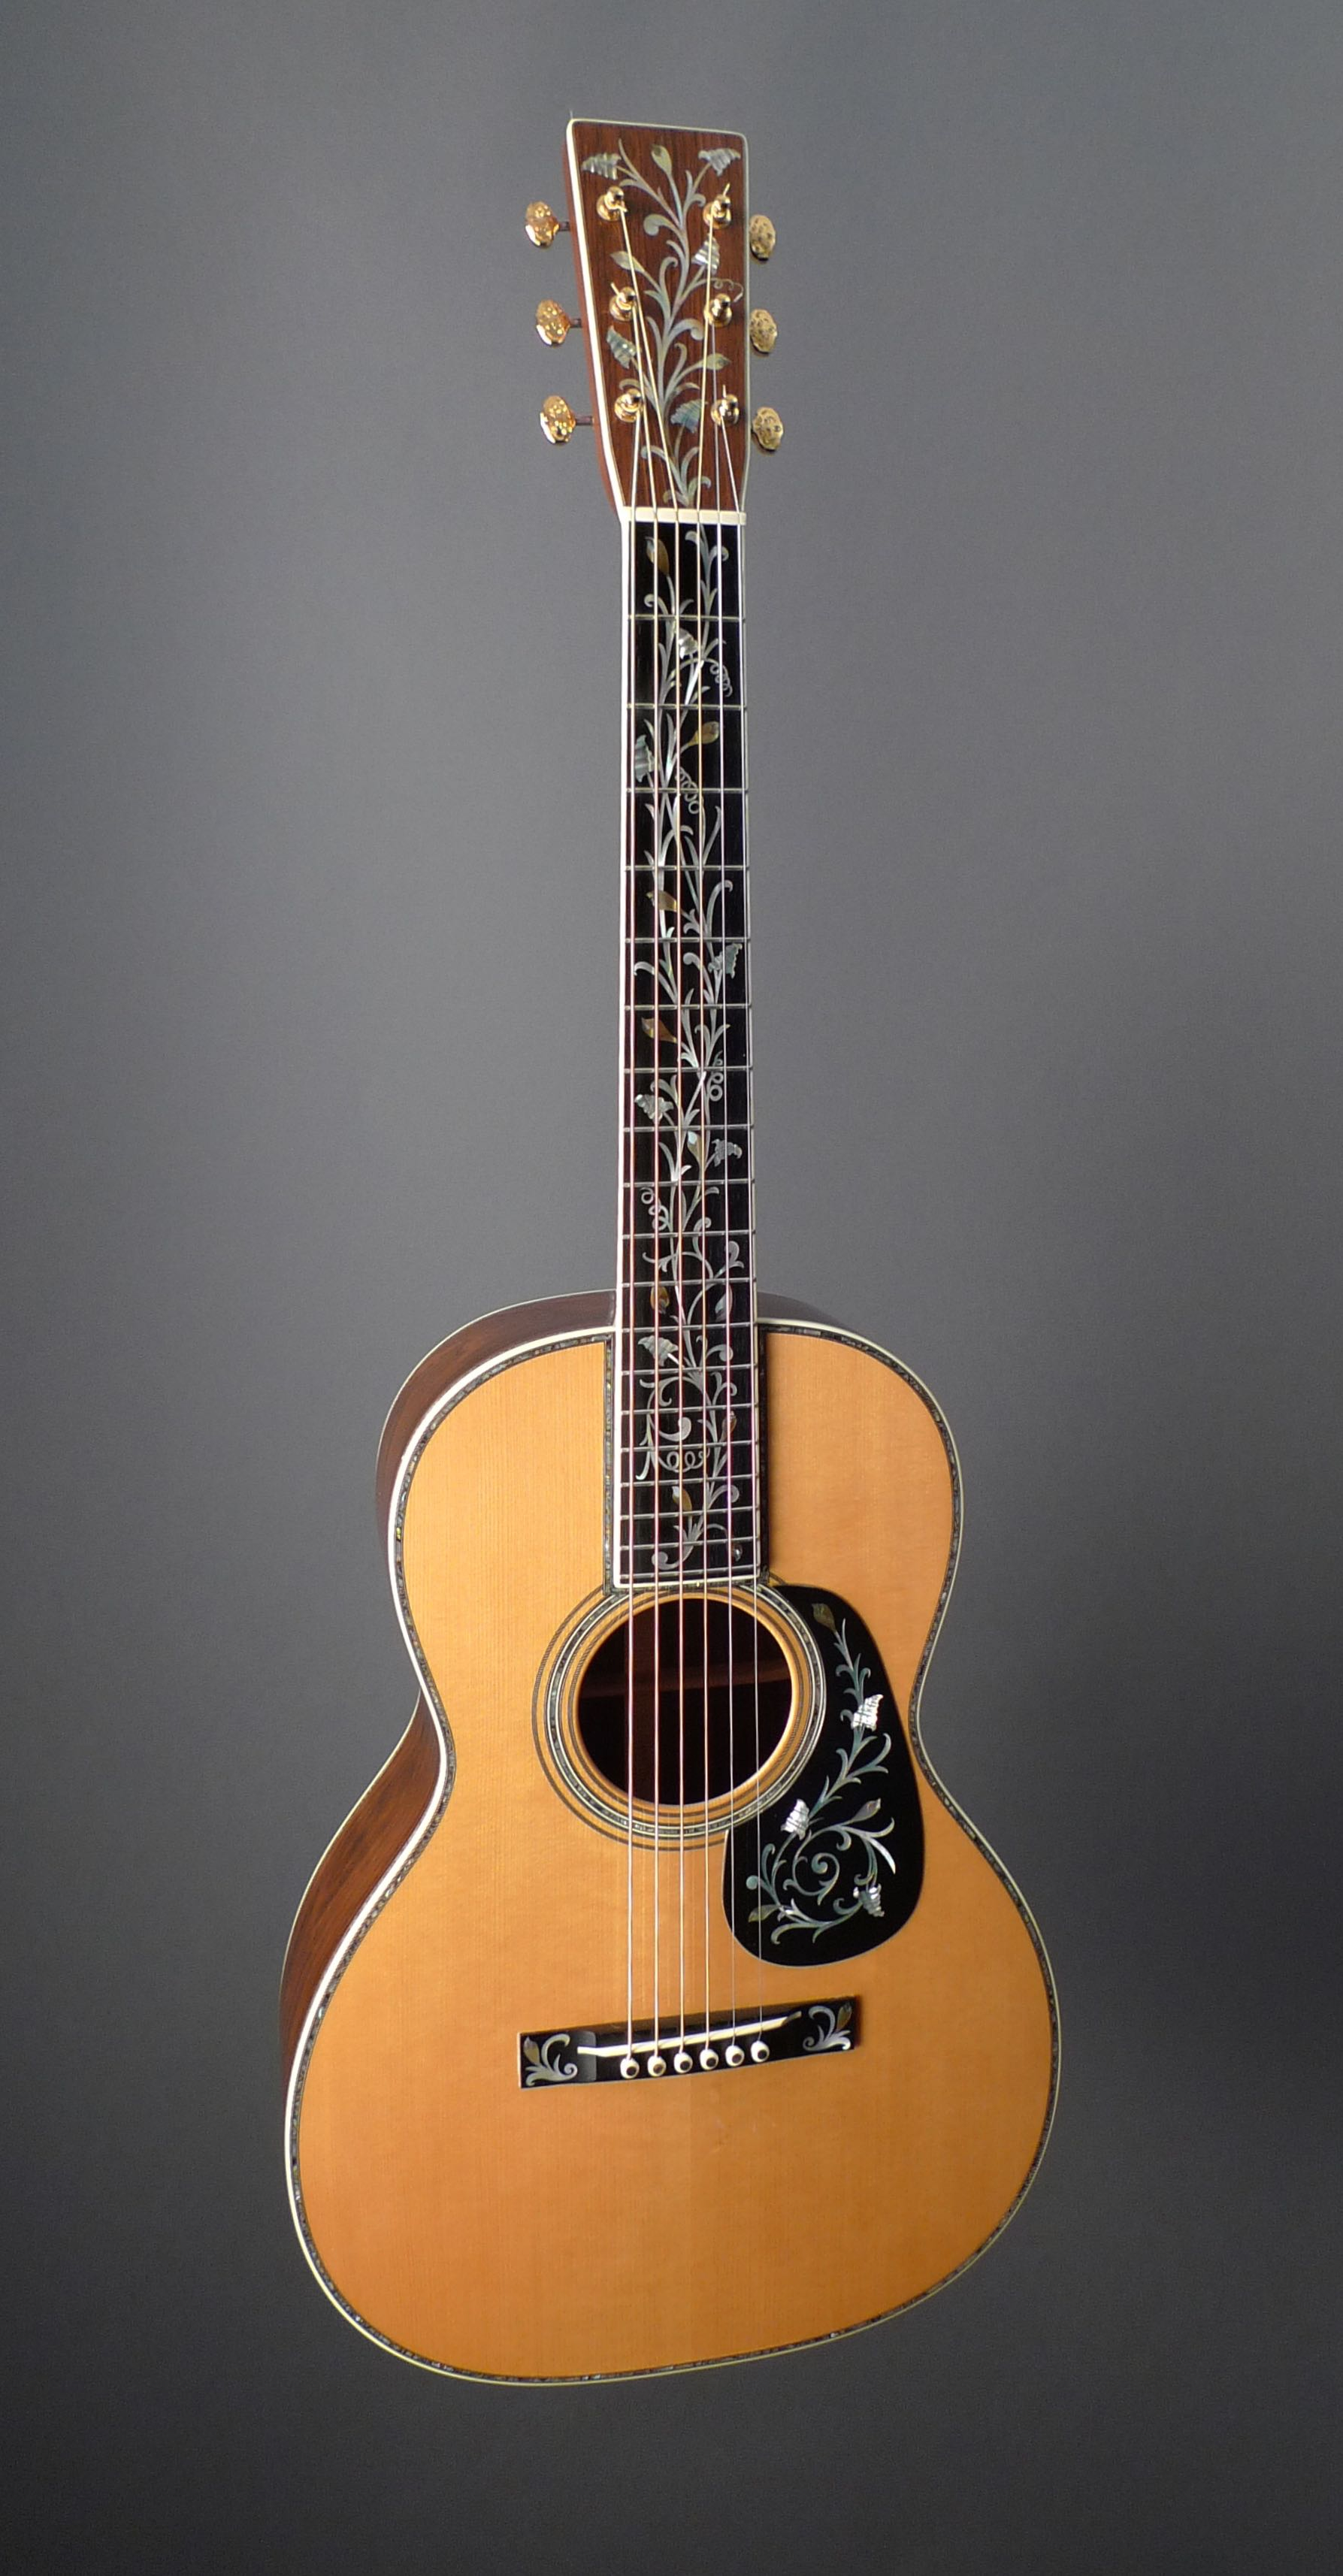 2006 martin 00 45 steel string acoustic guitar at dream guitars. Black Bedroom Furniture Sets. Home Design Ideas